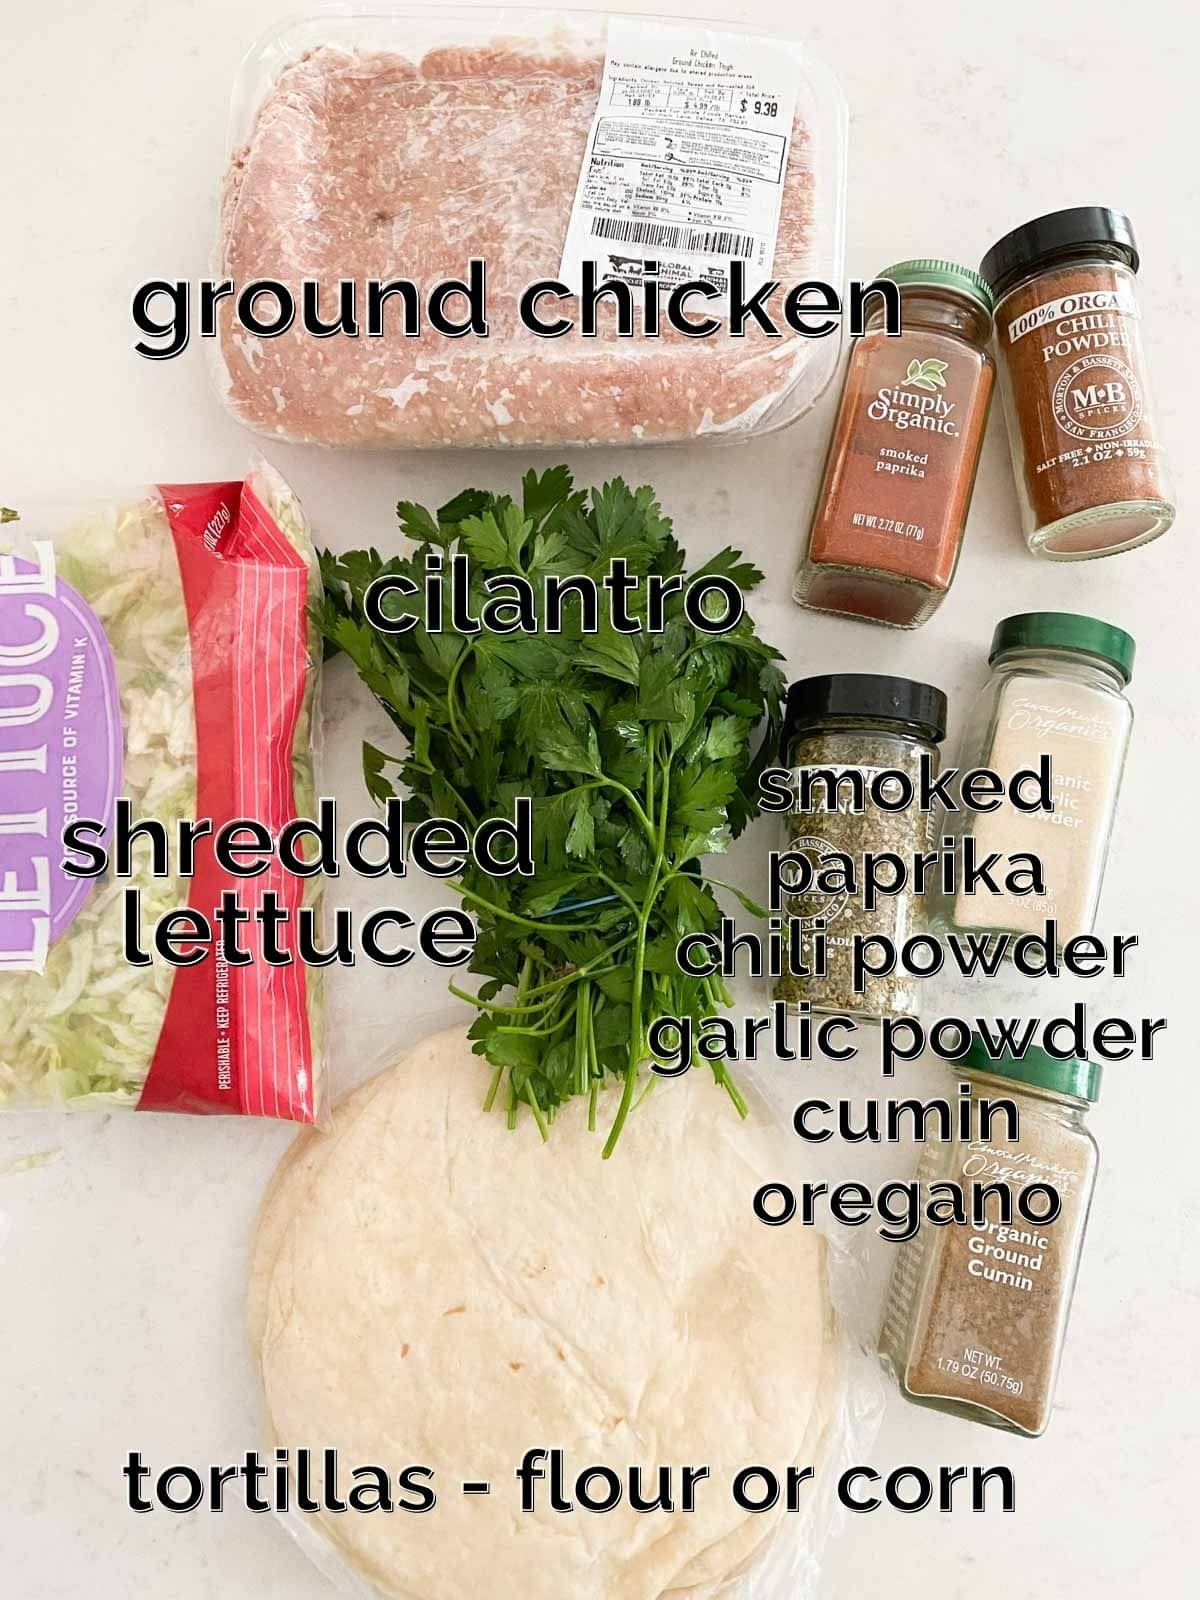 Ground chicken, lettuce, tortillas and spices on a white table